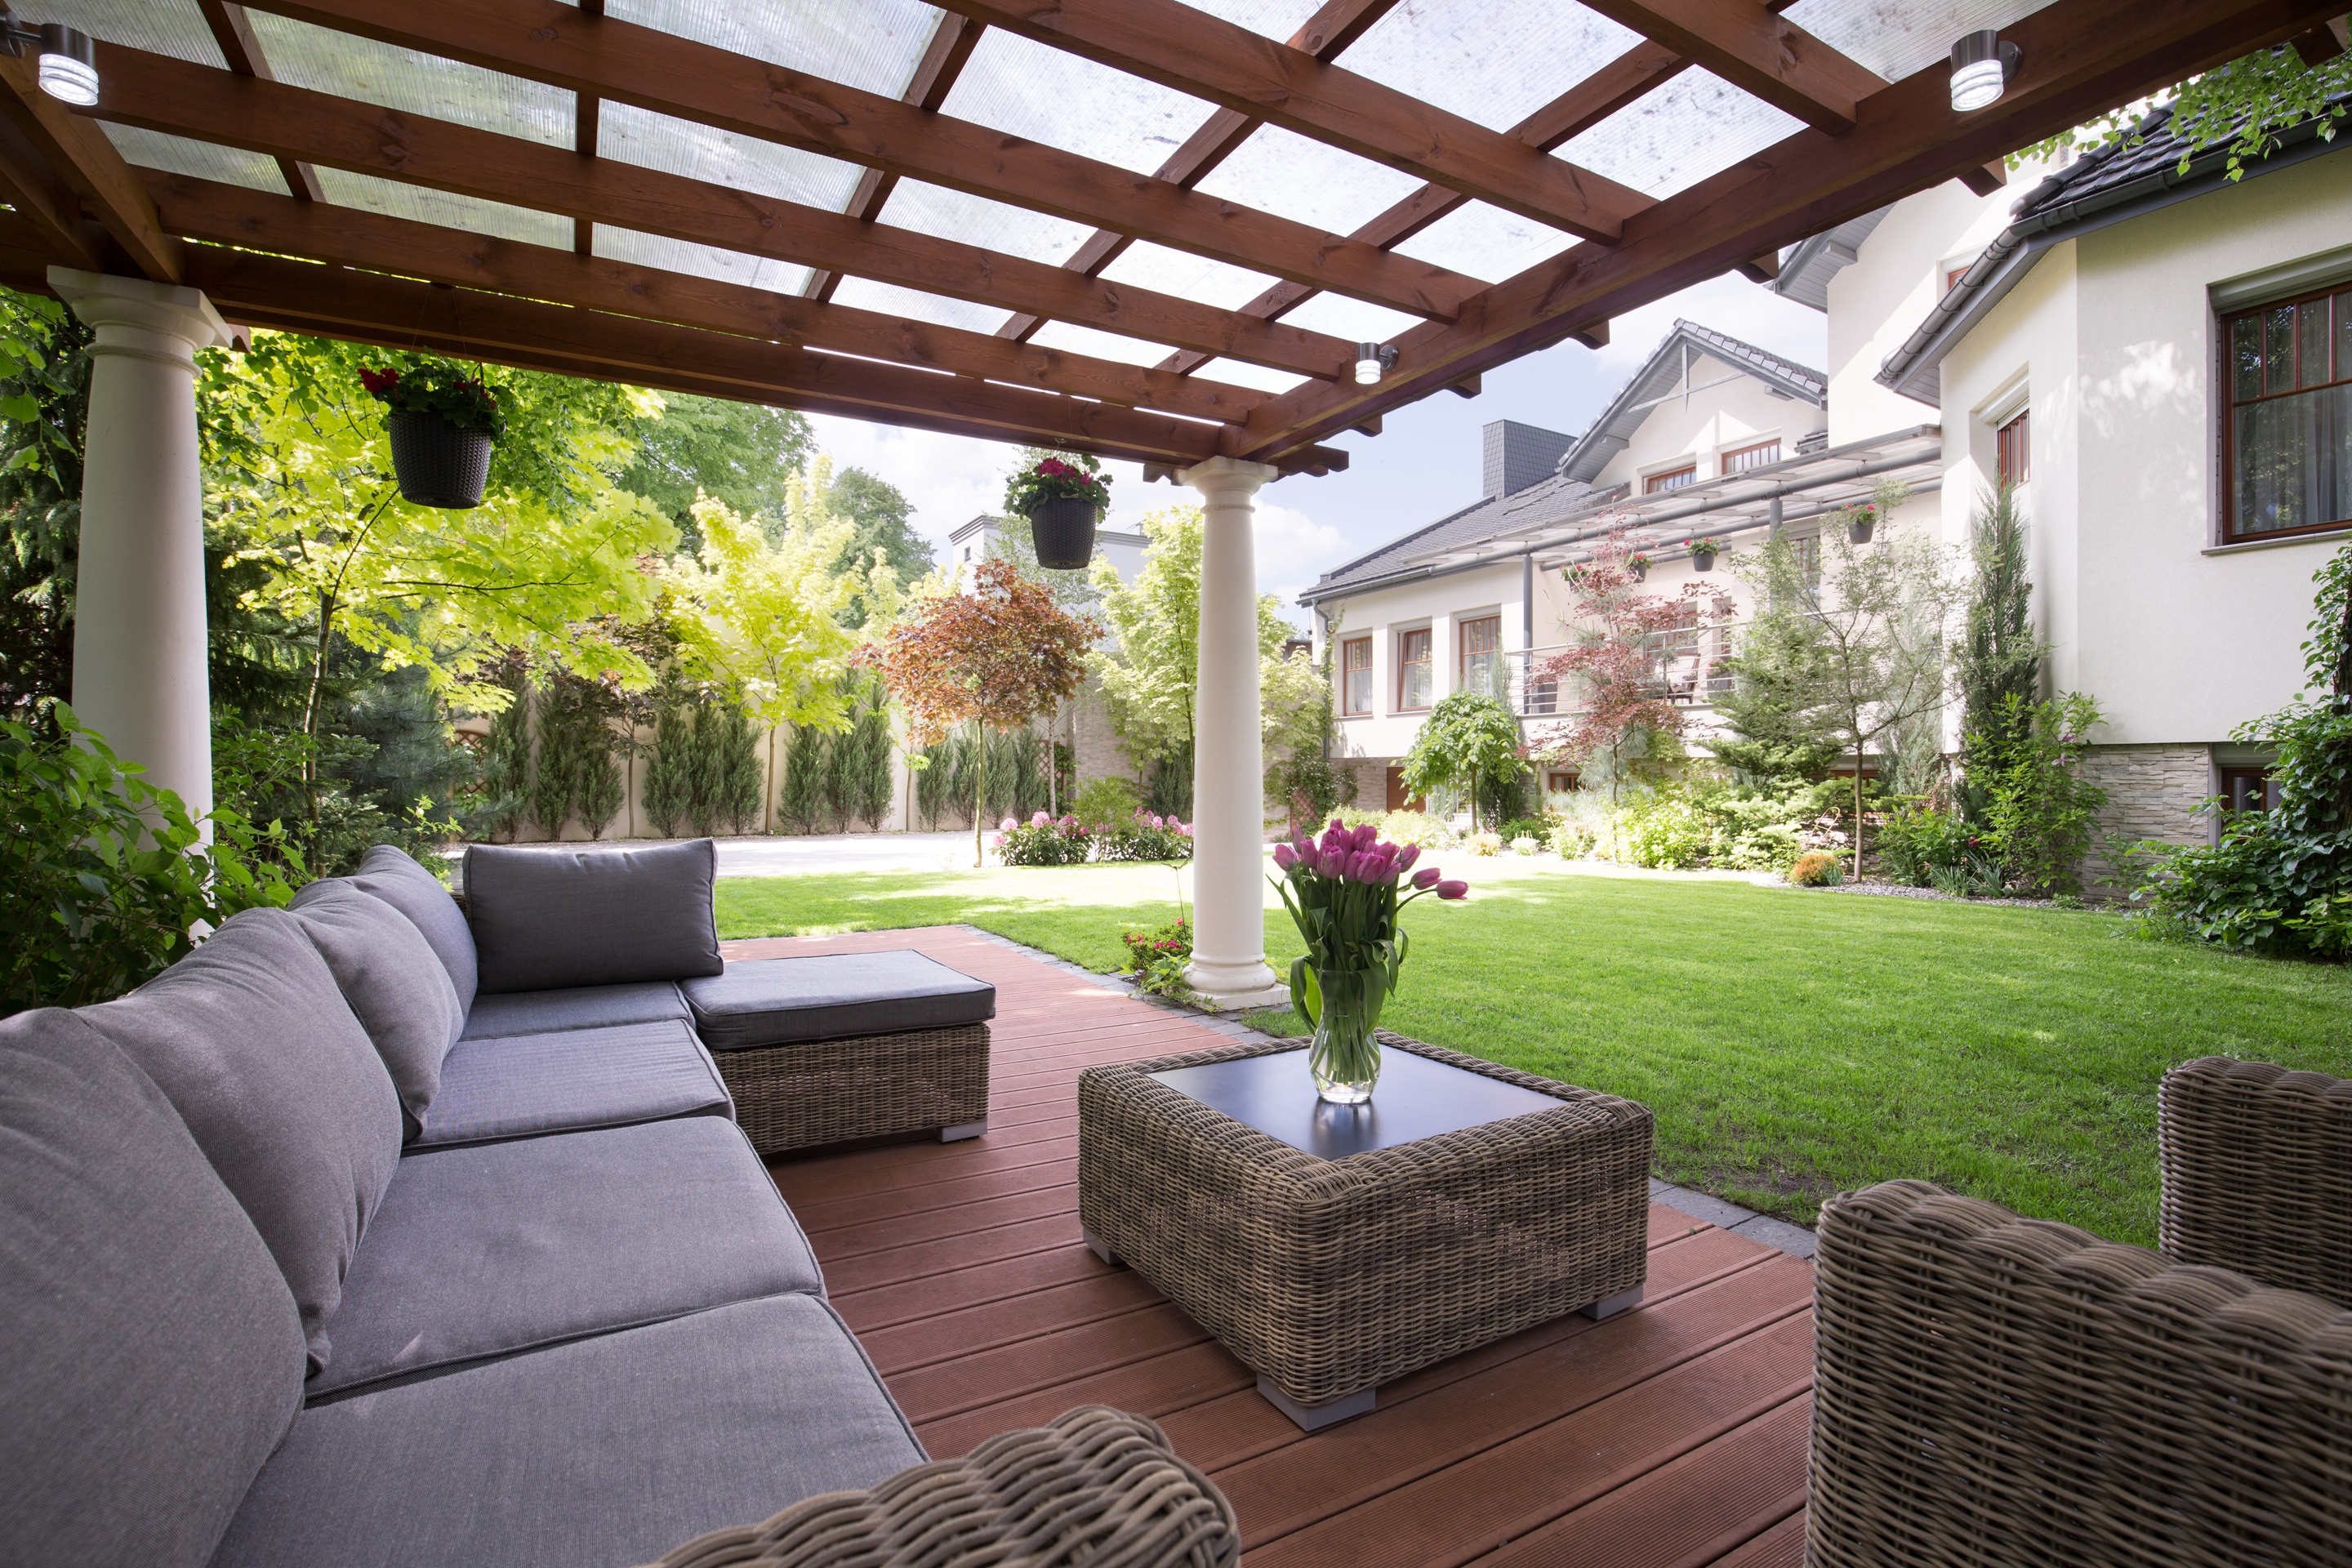 , Enhancing Your Backyard With a Deck, Patio, or Outdoor Kitchen